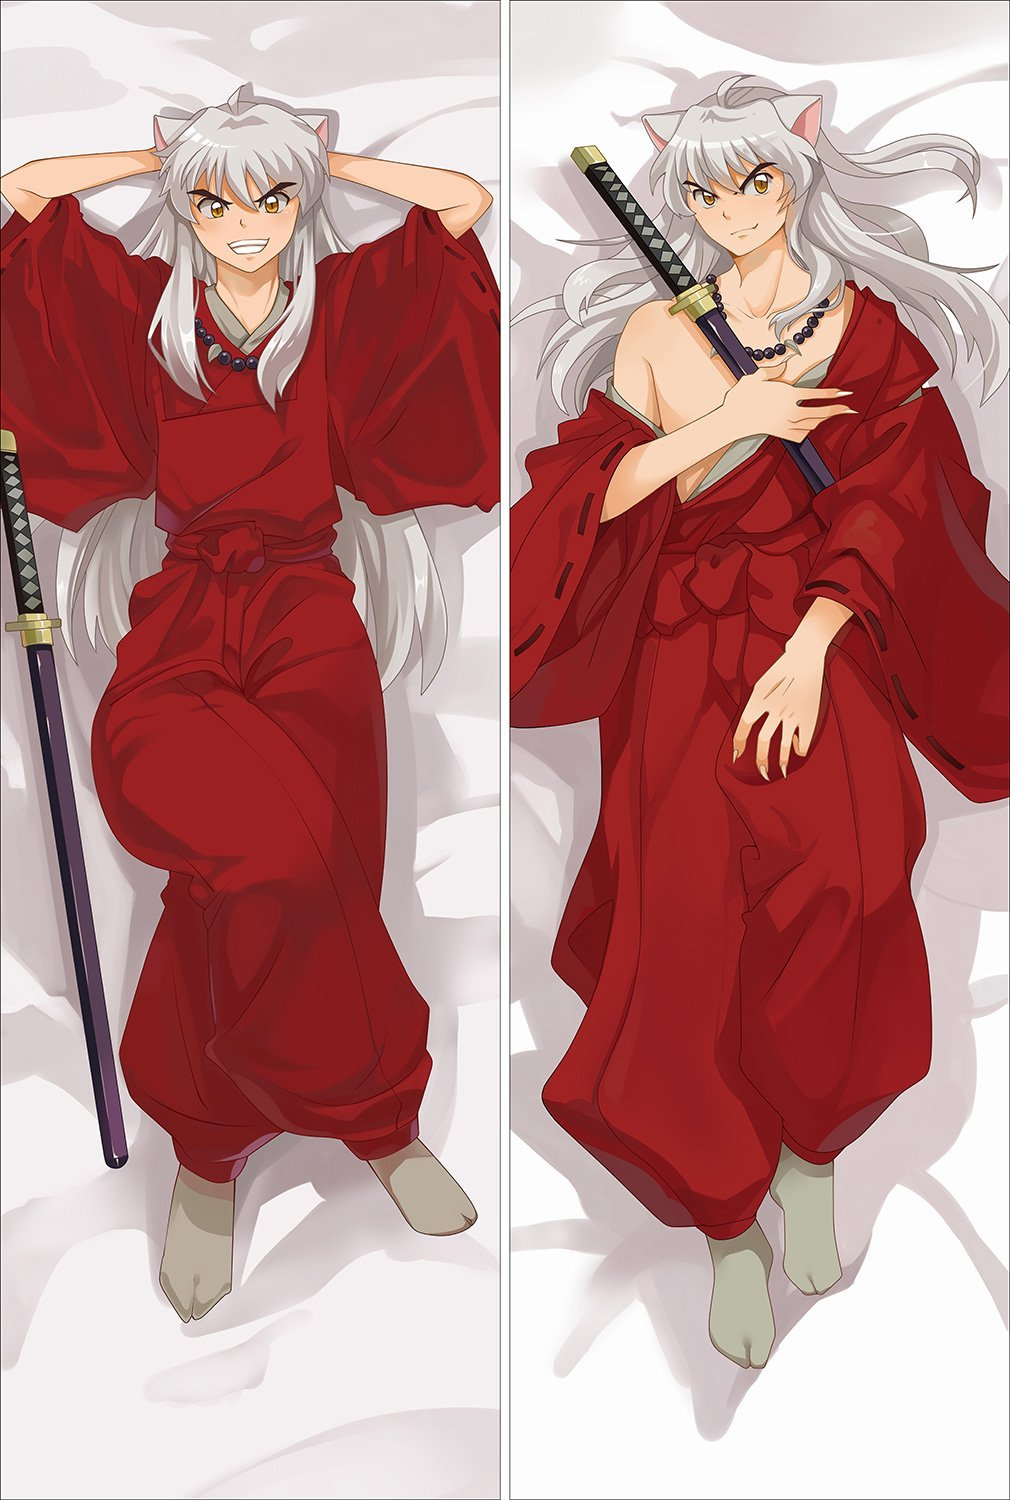 You Loving August 2016 update hot anime Inuyasha: A Feudal Fairy Tale body Pillowcase (50x160cm 2way, 1)